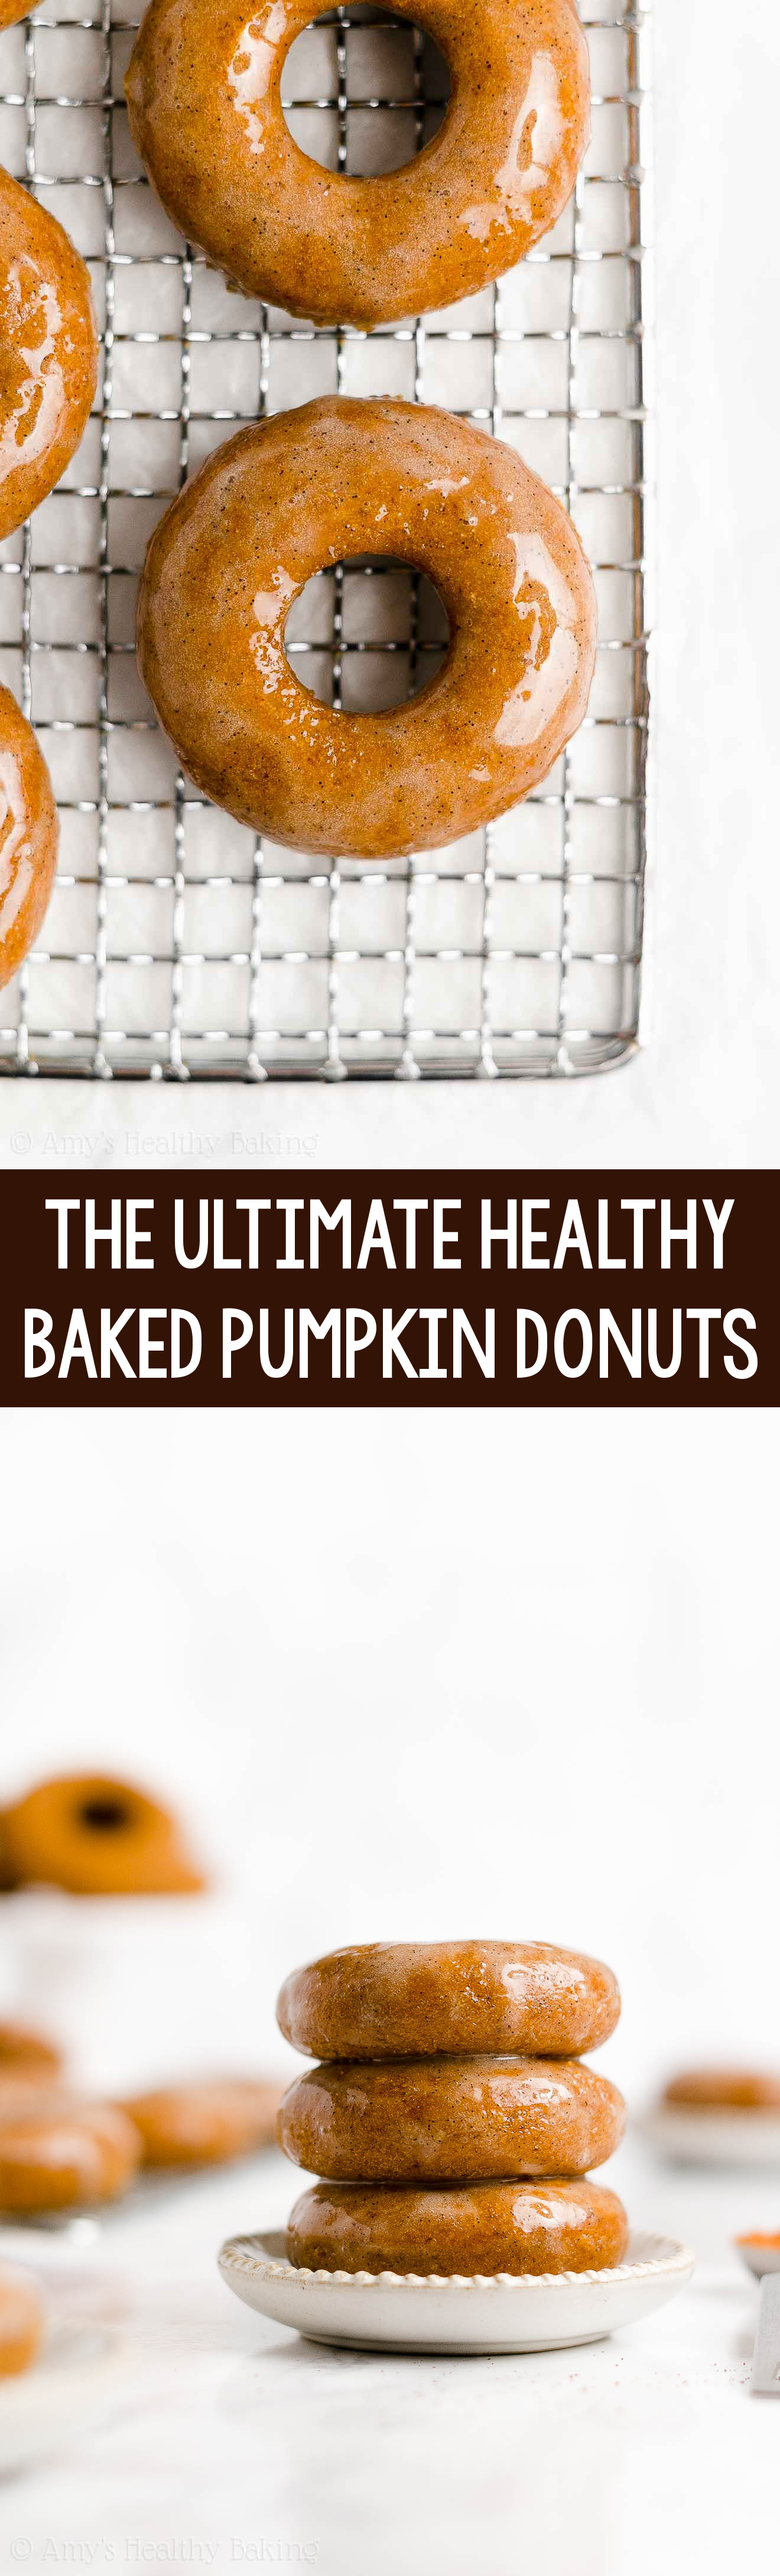 BEST EVER Easy Healthy Homemade Low Calorie Gluten Free Baked Pumpkin Donuts